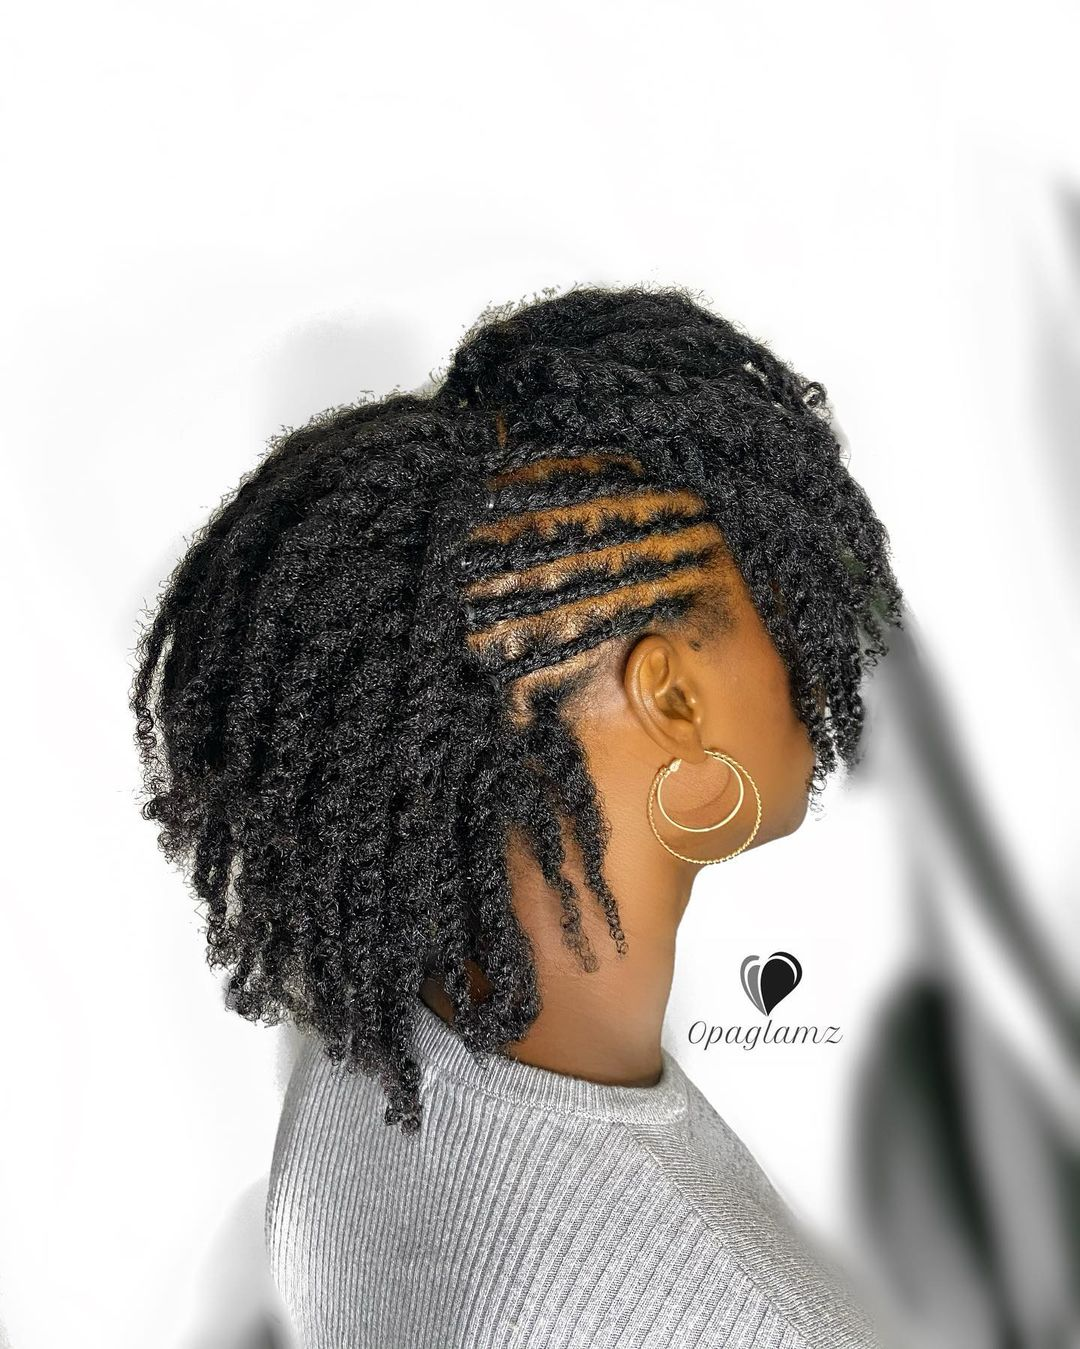 Black hairstyles for women NHP Approved 14